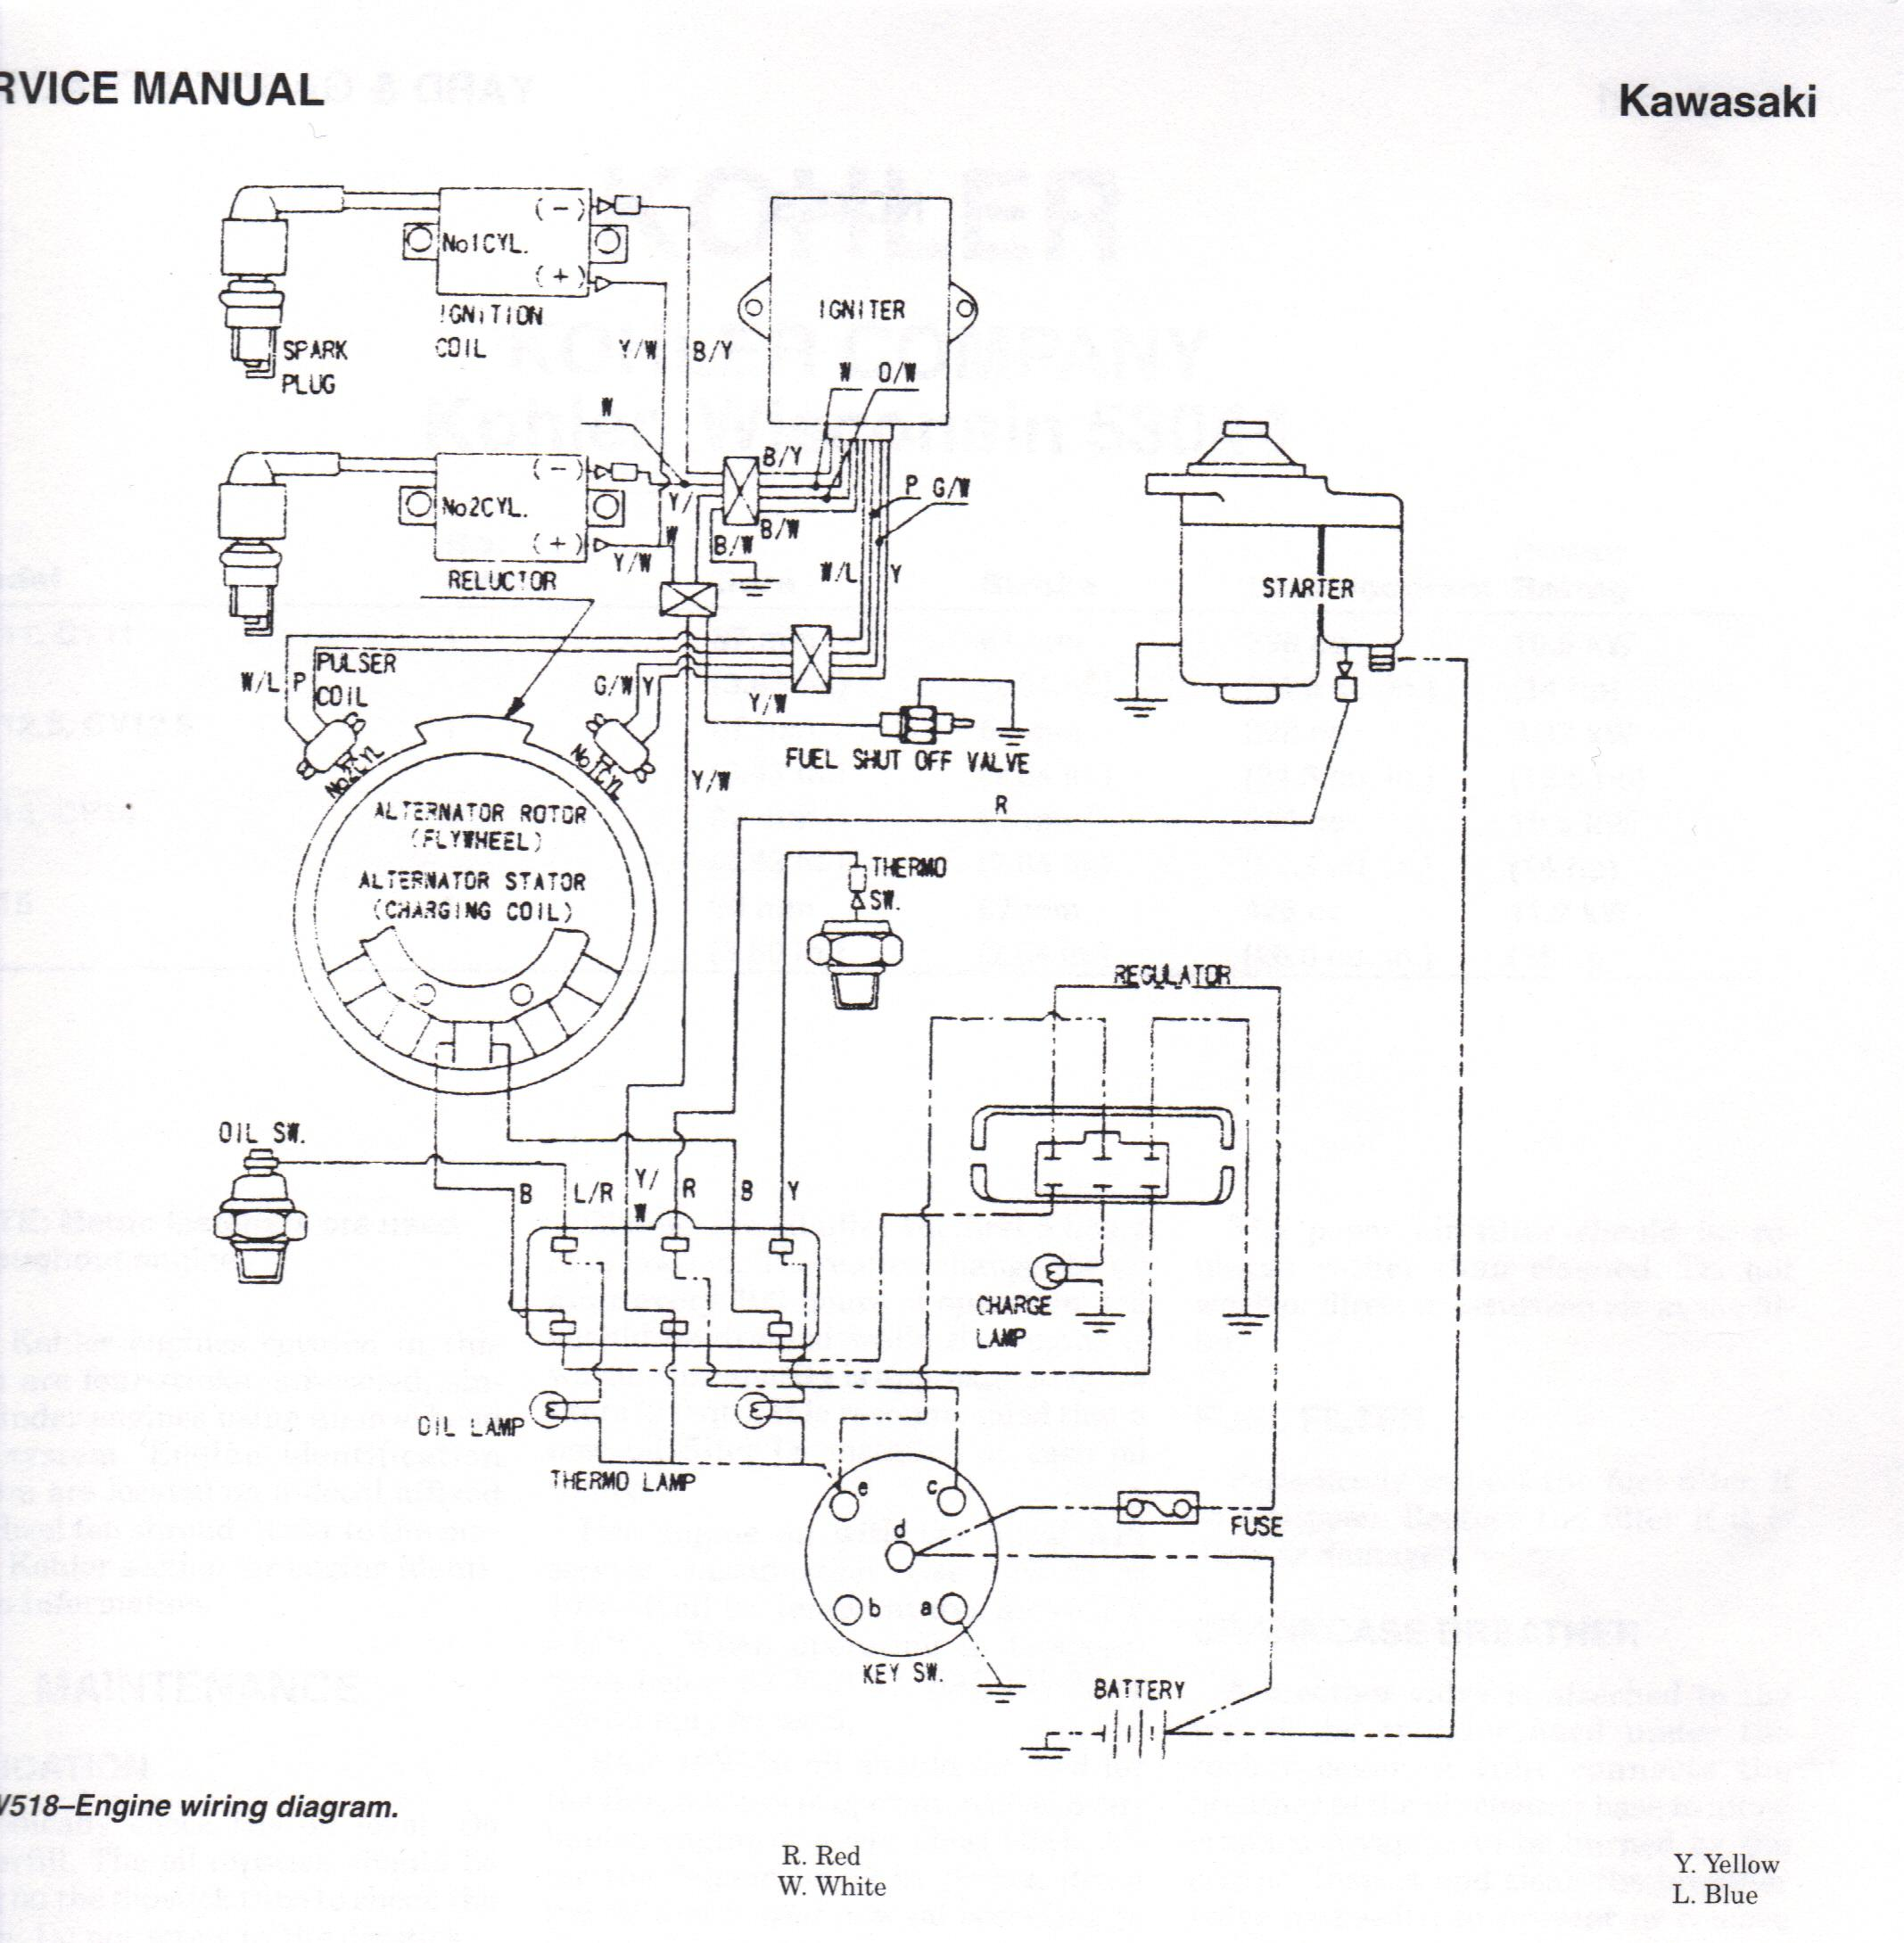 kawasaki 20 hp fd620d will not start when hot no problem cold rh justanswer com FD620 Kawasaki Engine Manual Kawasaki FD750